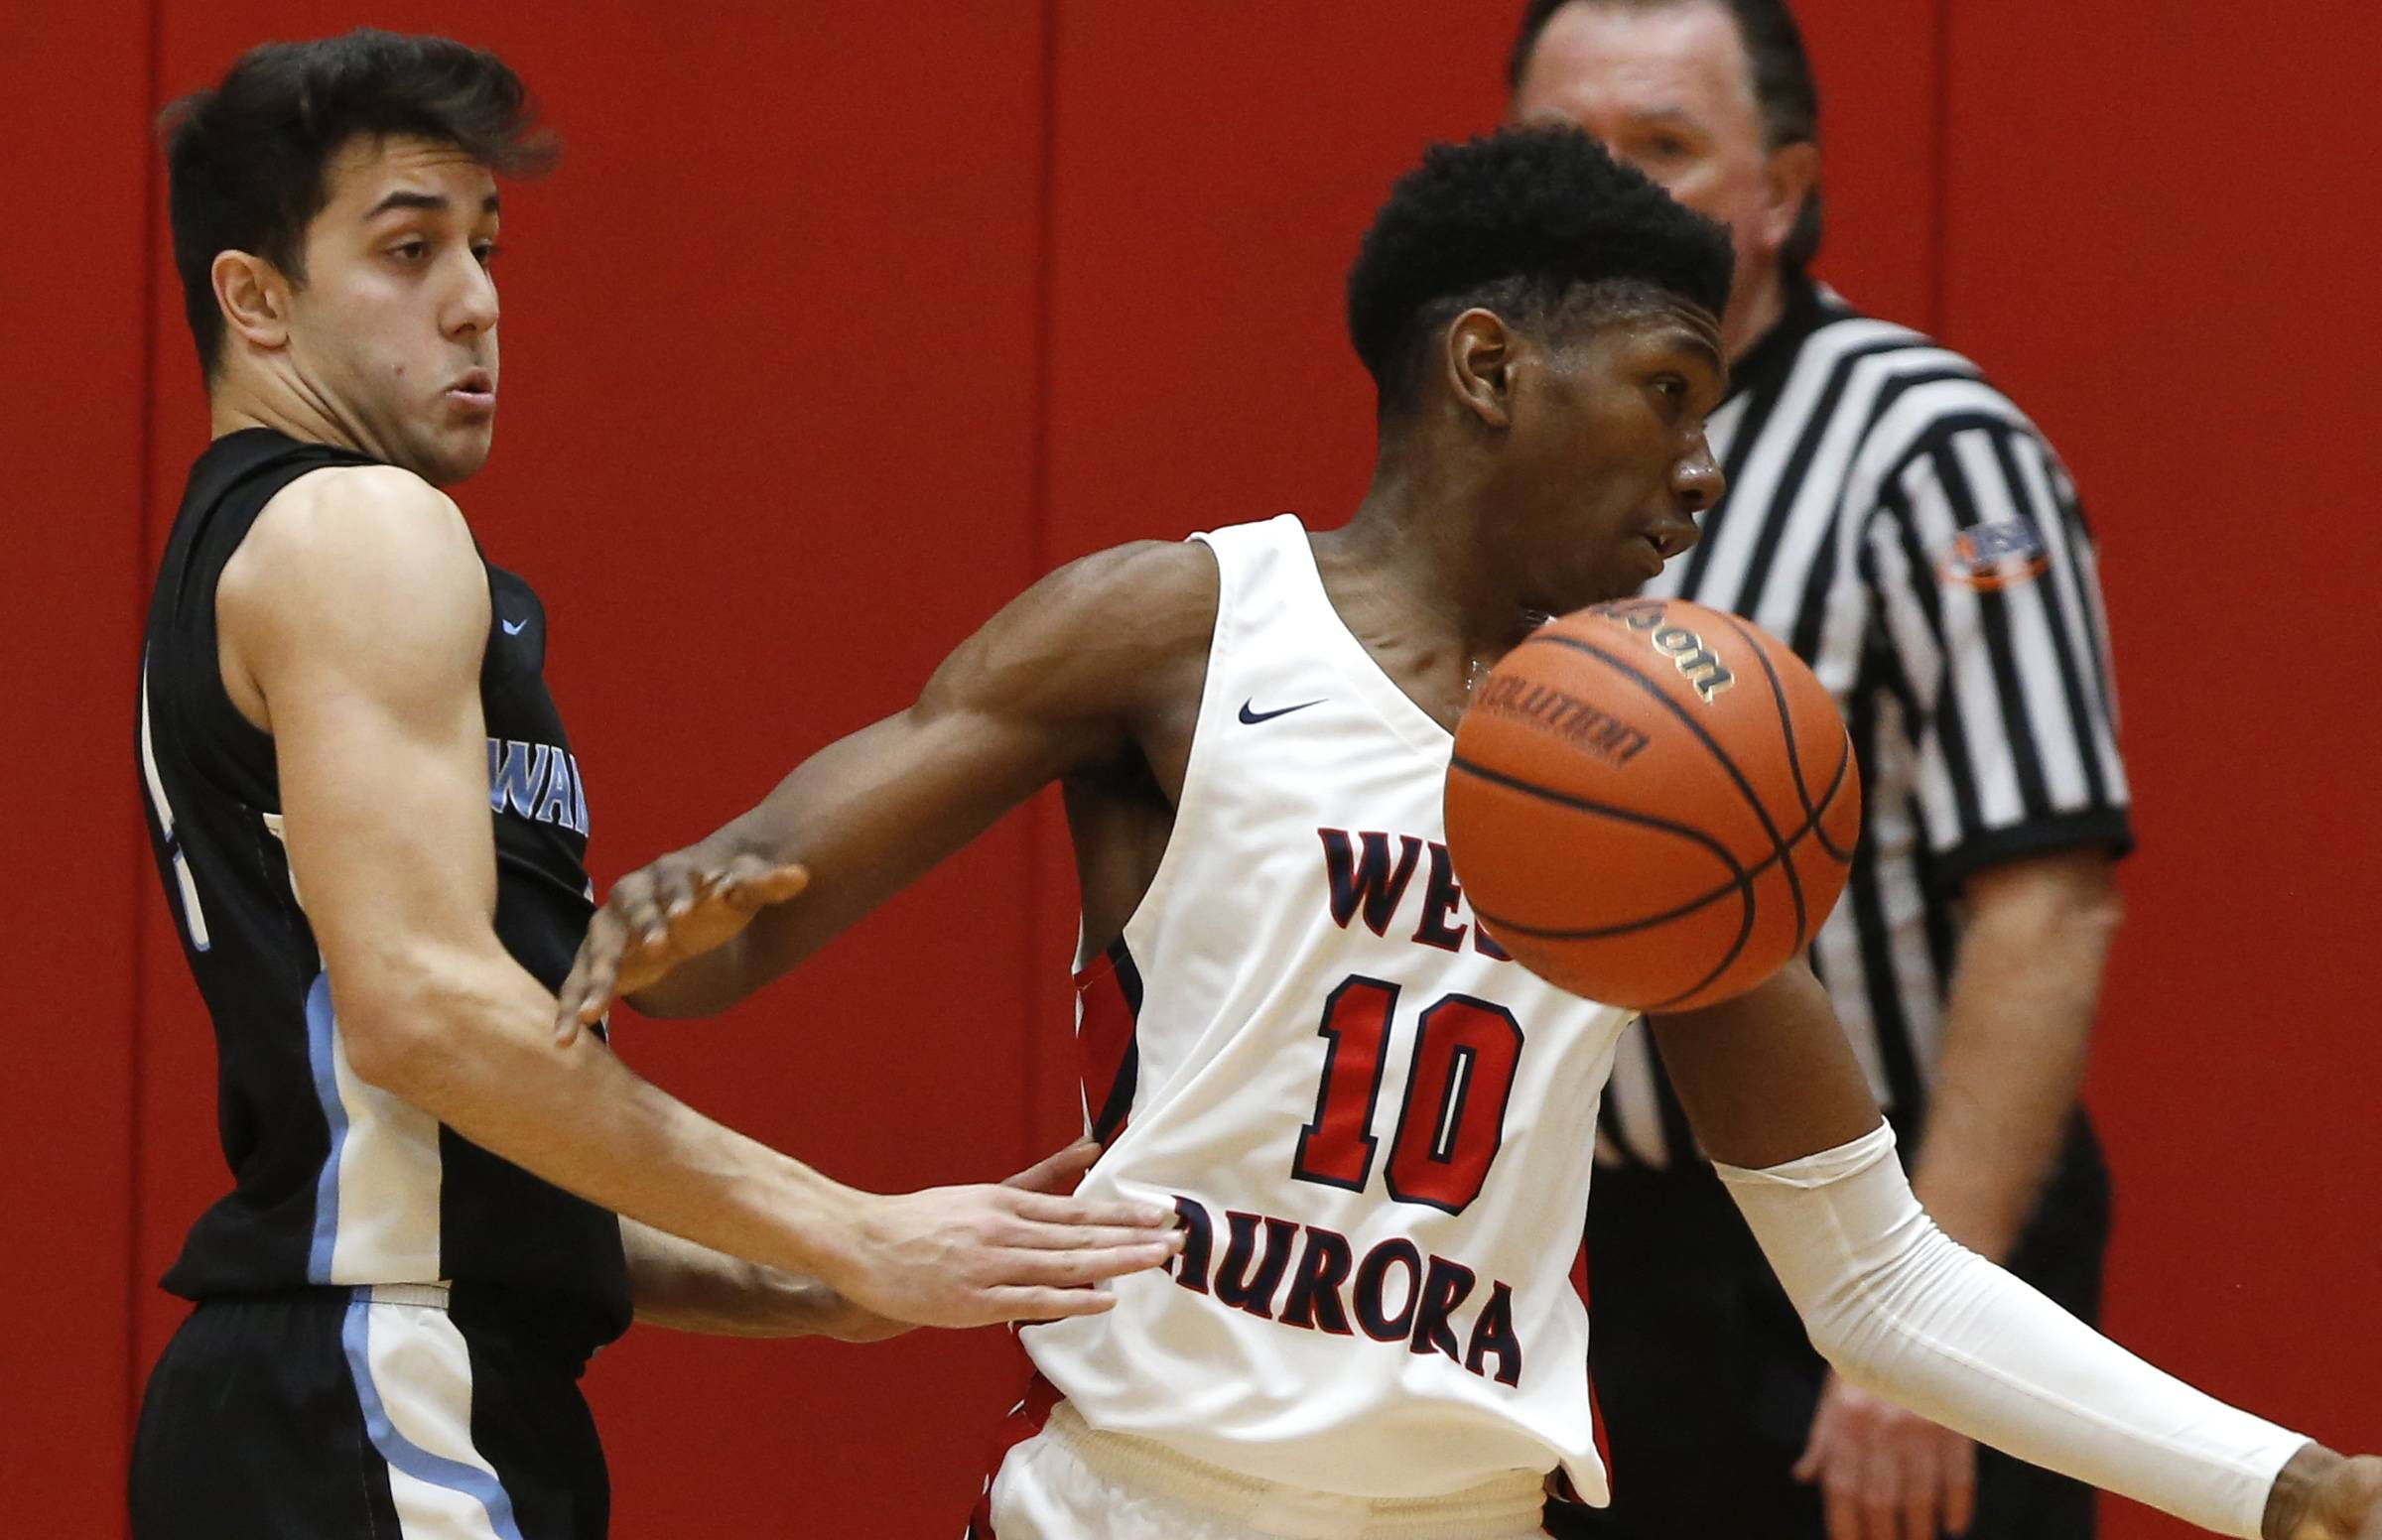 West Aurora's Crutcher soars to new heights